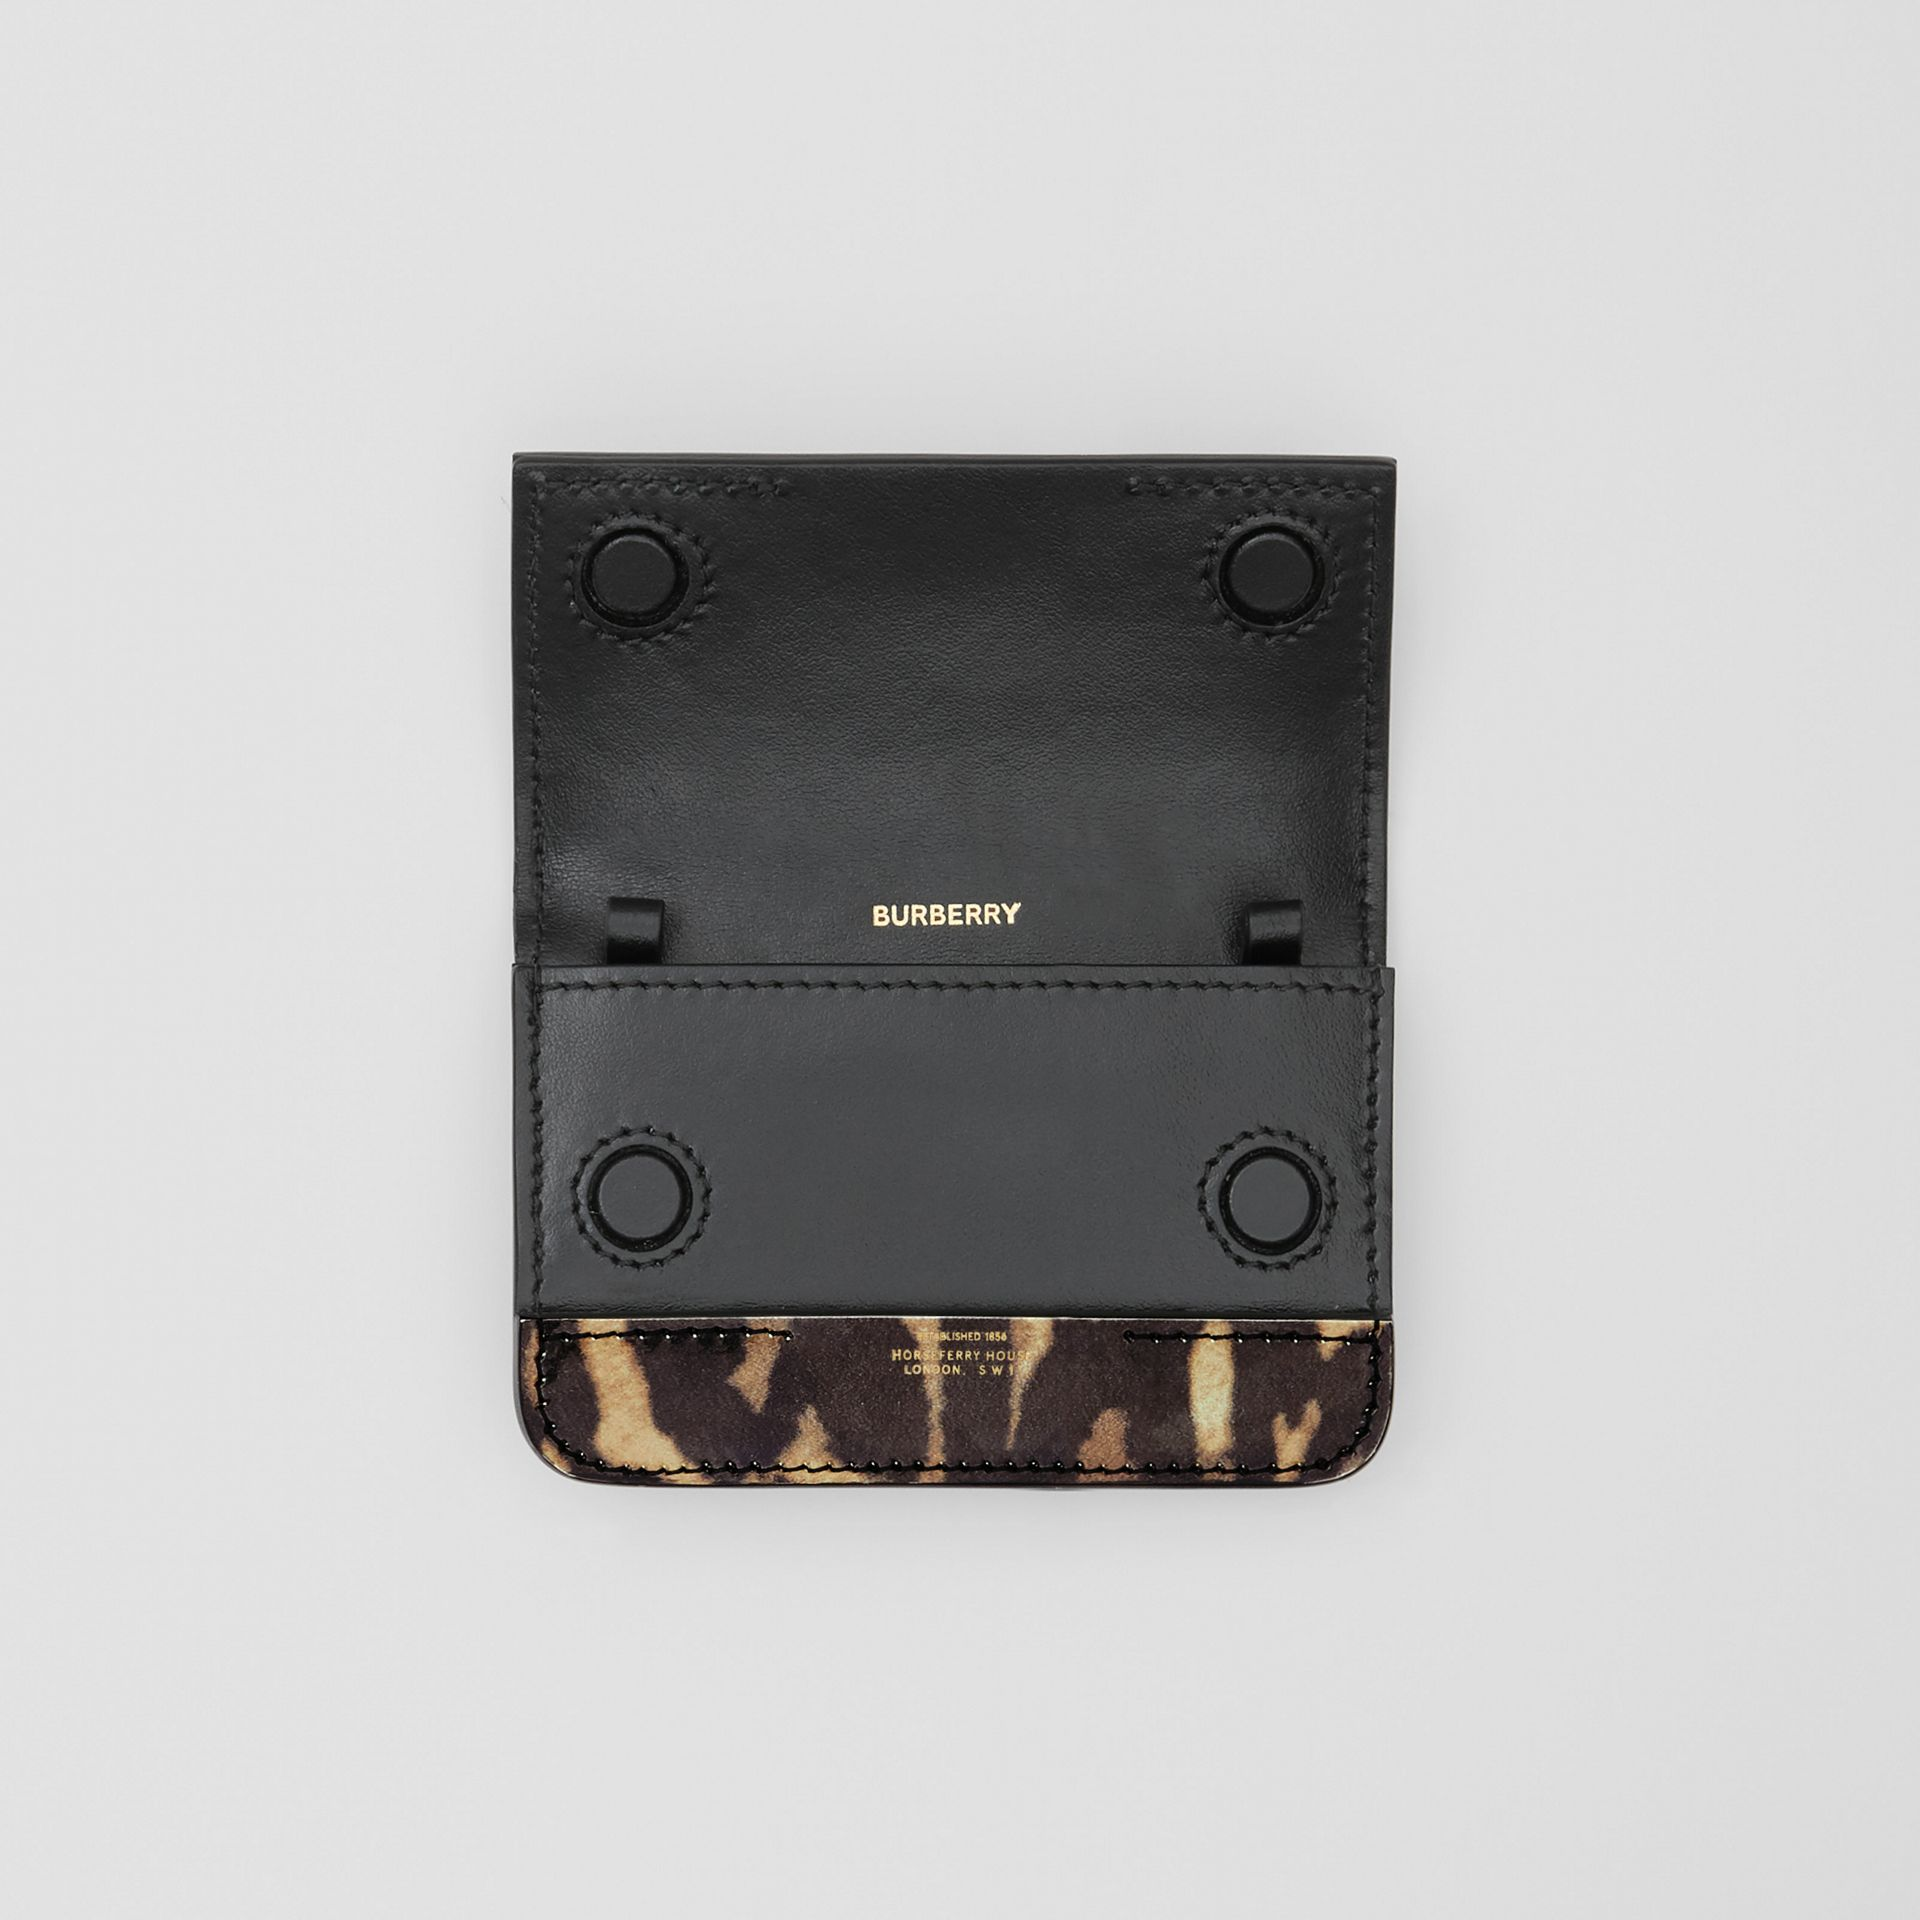 Leopard Print Leather Card Case with Chain Strap in Dark Mustard - Women | Burberry - gallery image 4